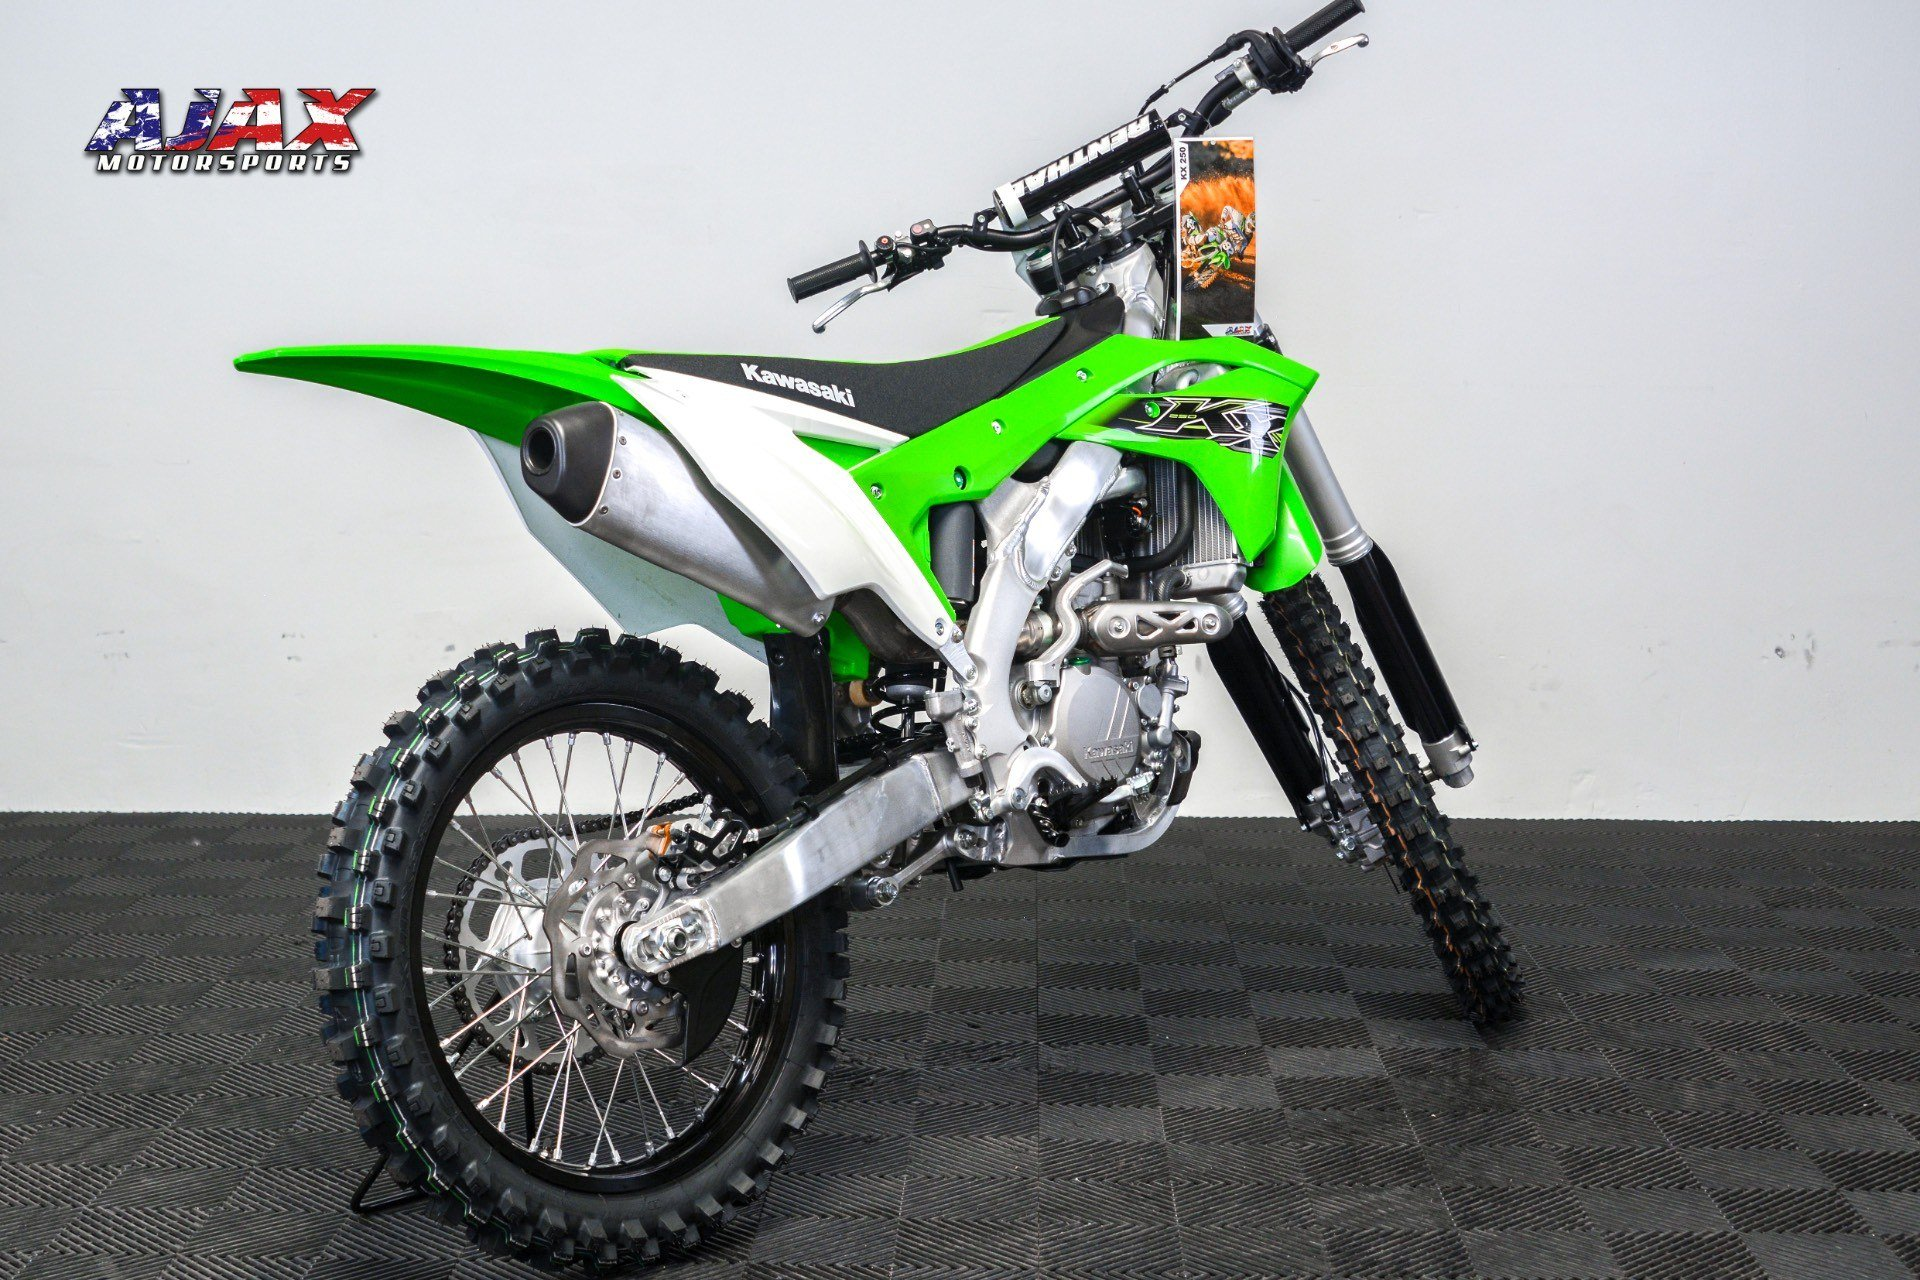 New 2019 Kawasaki Kx 250 Motorcycles In Oklahoma City Ok Stock Kx250 Wiring Harness